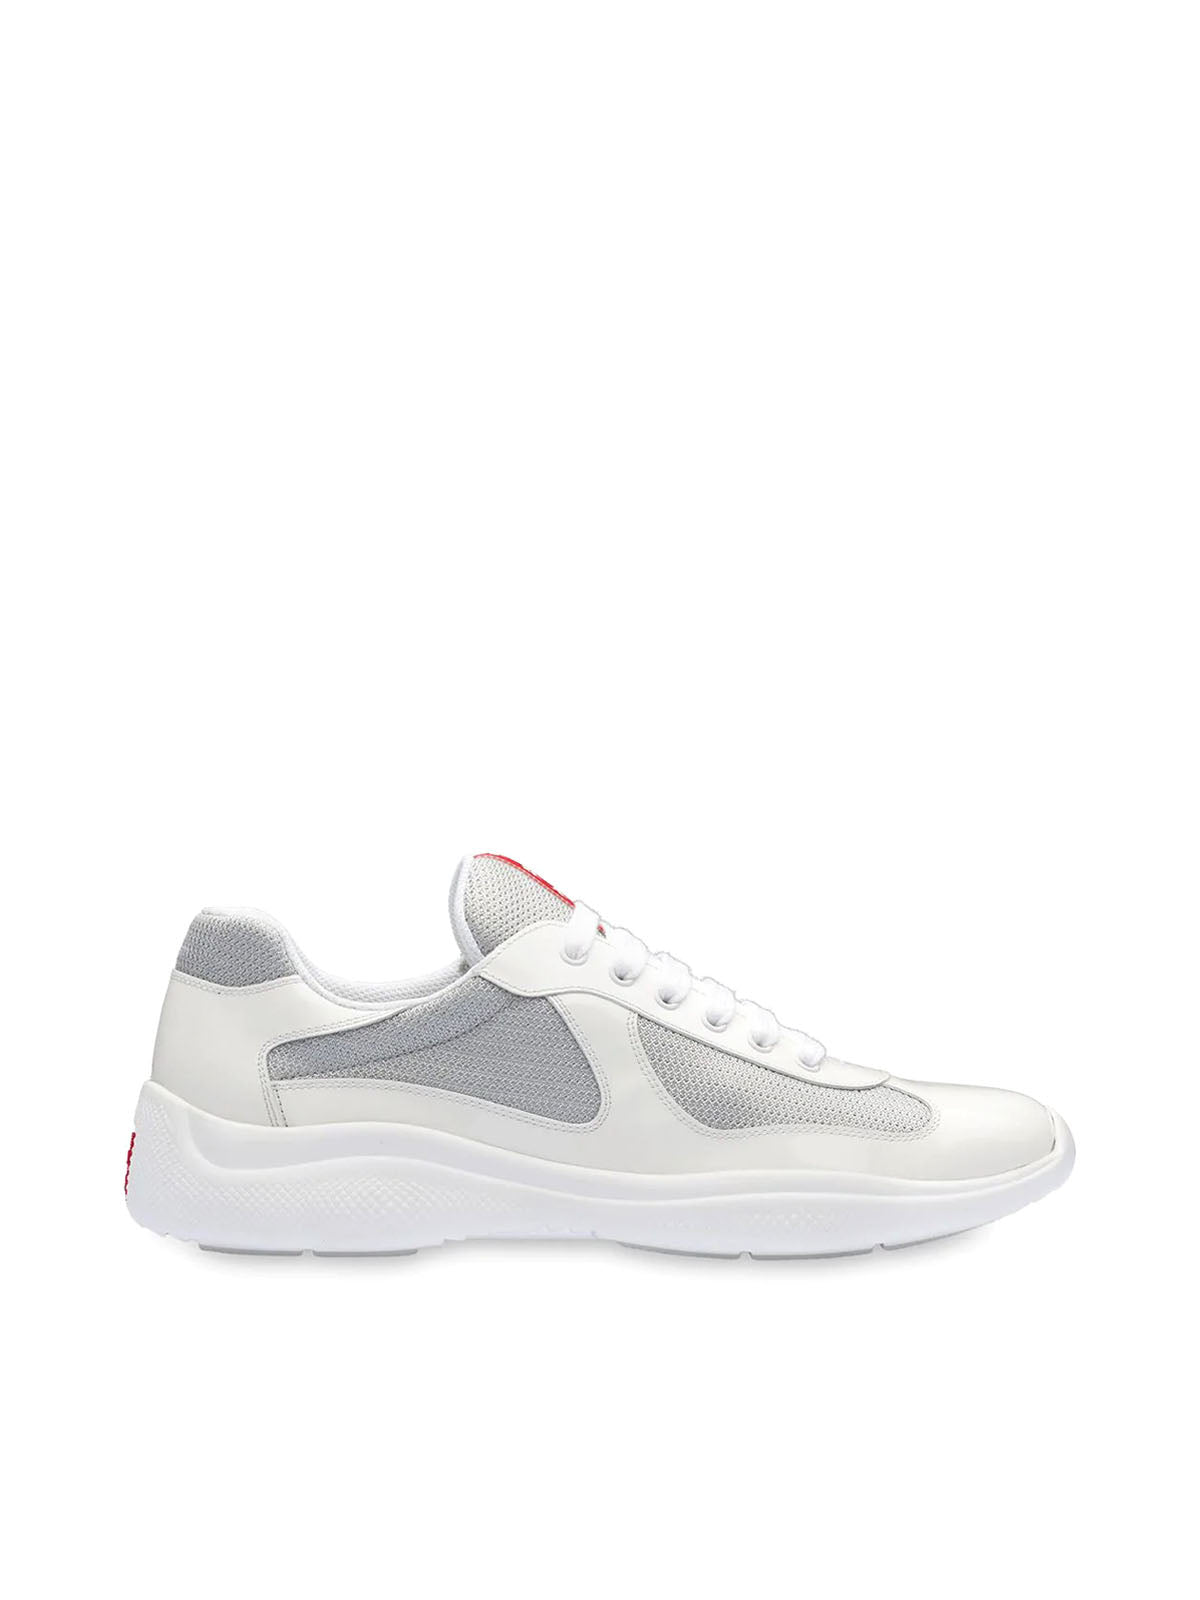 white Americas cup patent leather sneakers